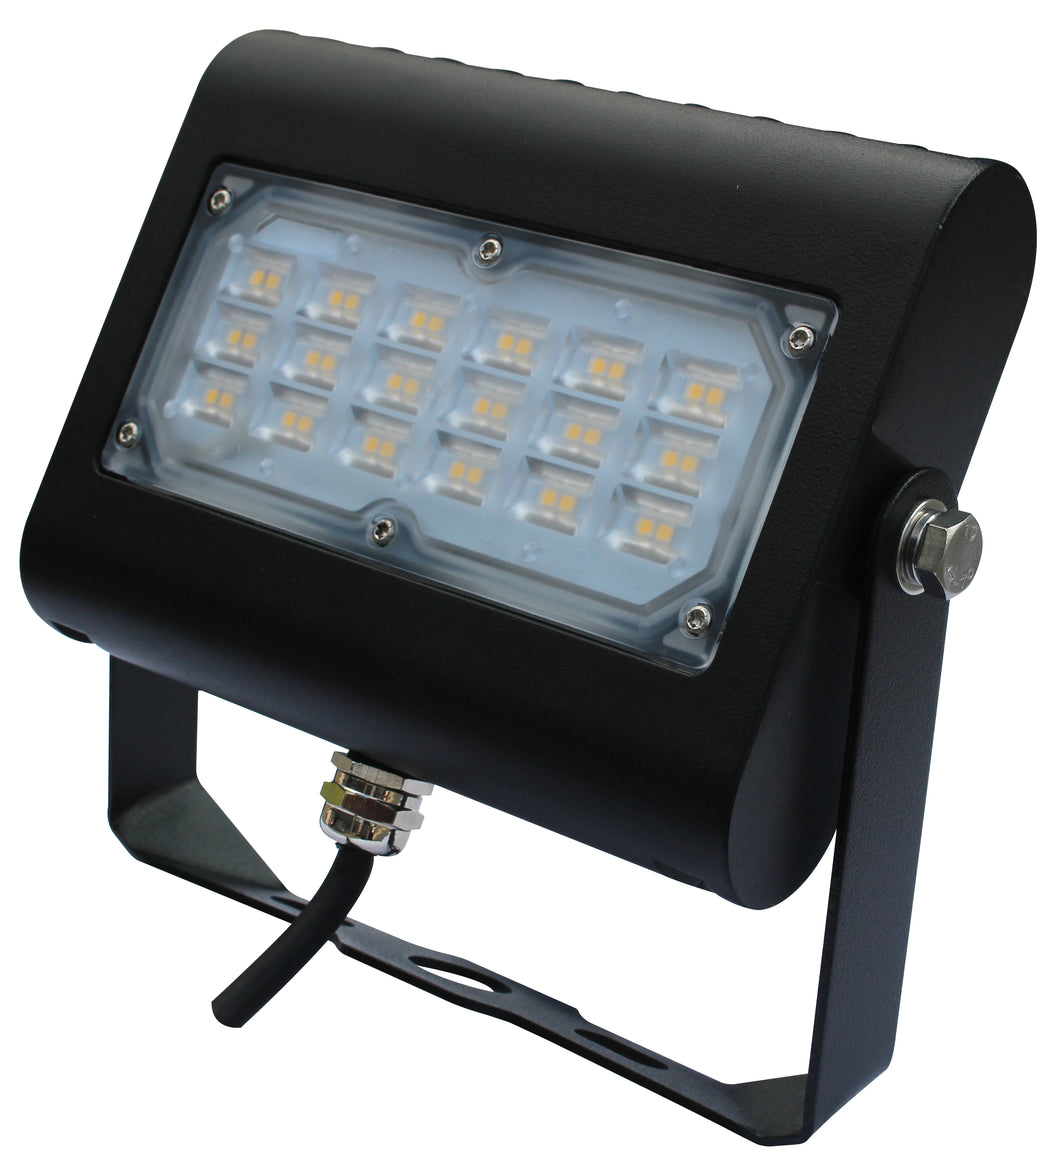 LED Area Light - Multi-Purpose - 30W - 3K / 4K / 5K